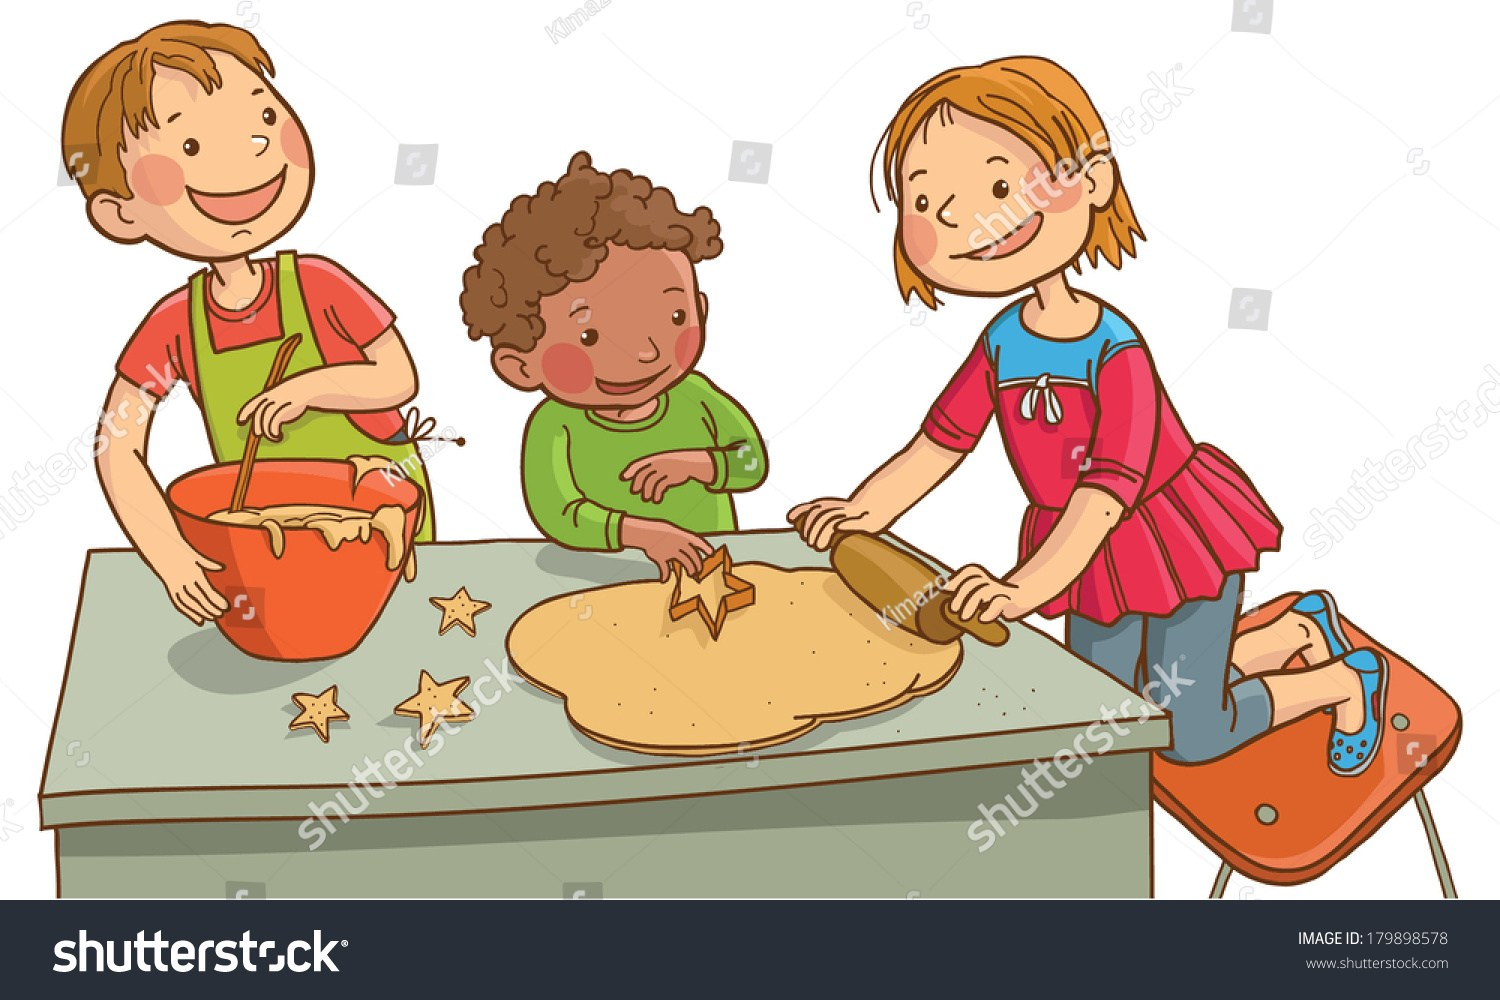 Making cookies clipart jpg freeuse stock Making cookies clipart 7 » Clipart Portal jpg freeuse stock